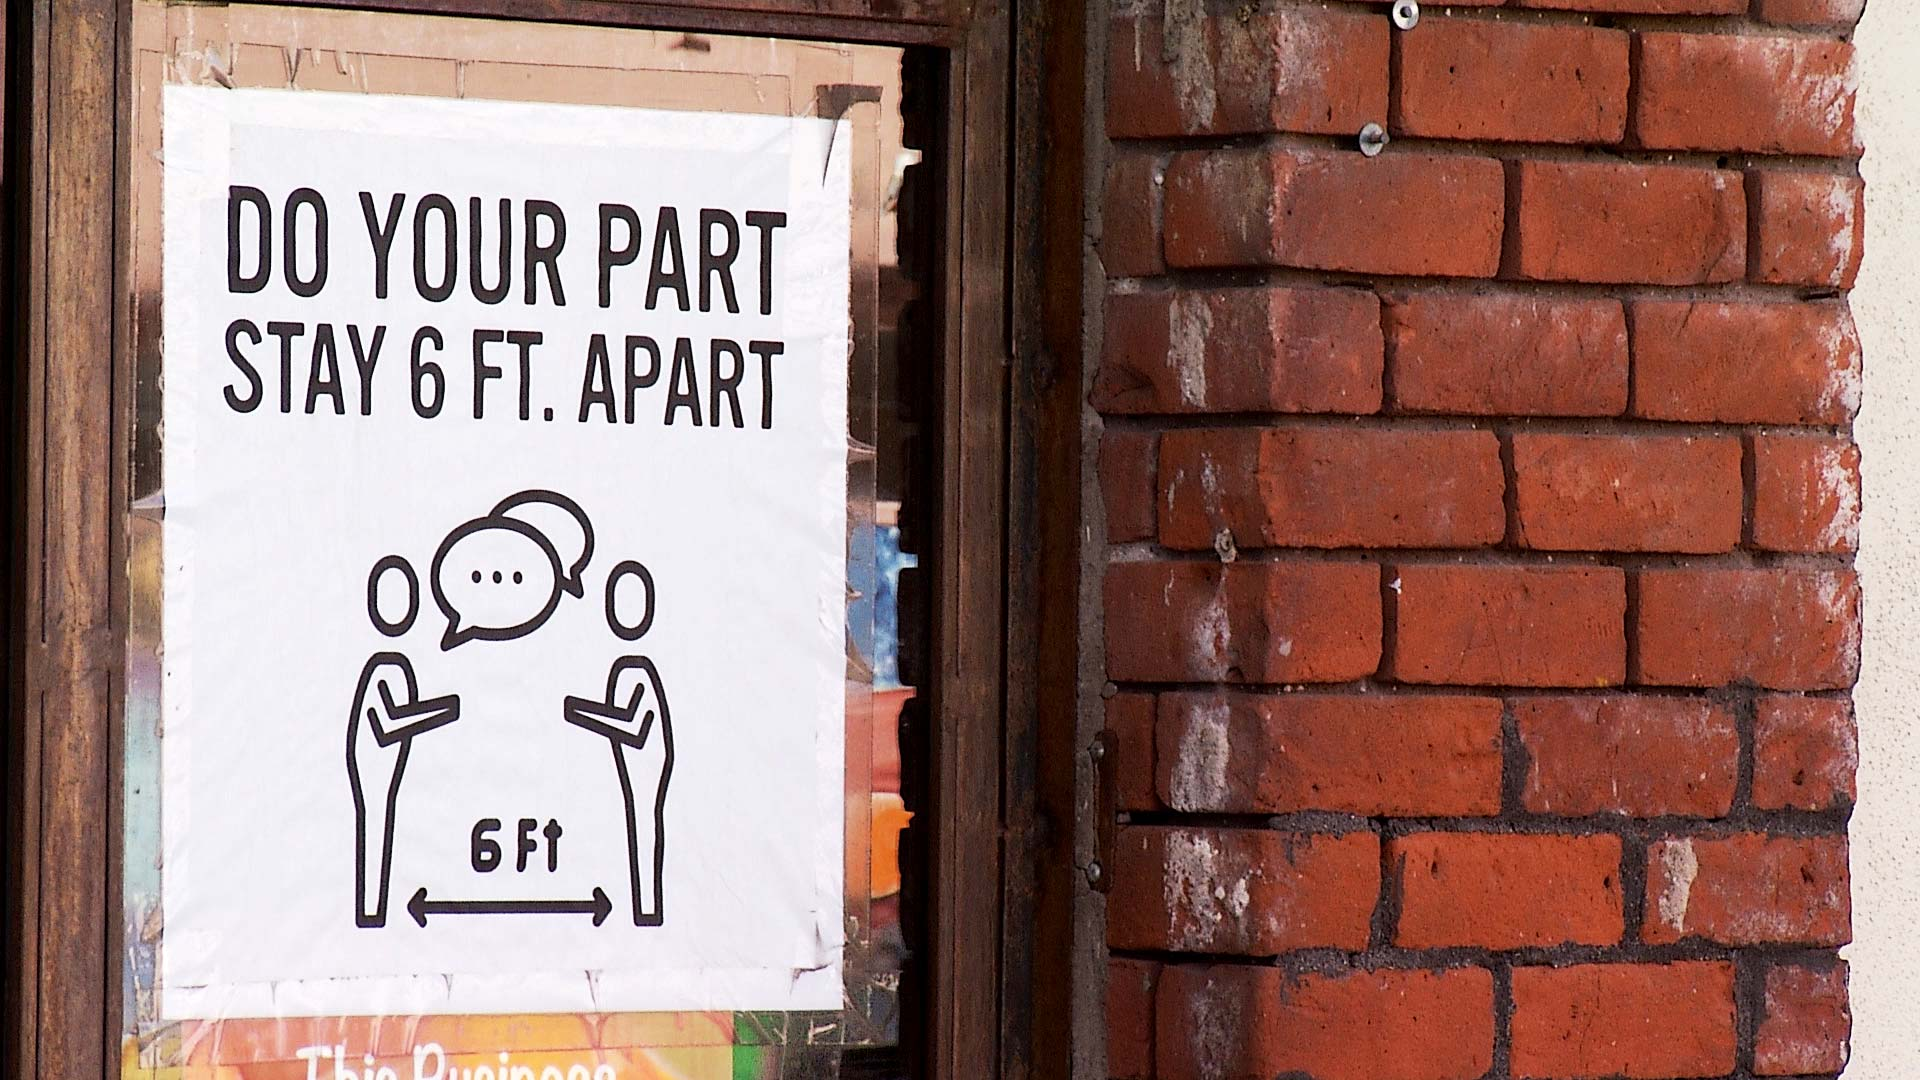 A sign taped to the window of a business in Tucson reminds people to stay 6 feet apart. 2020.